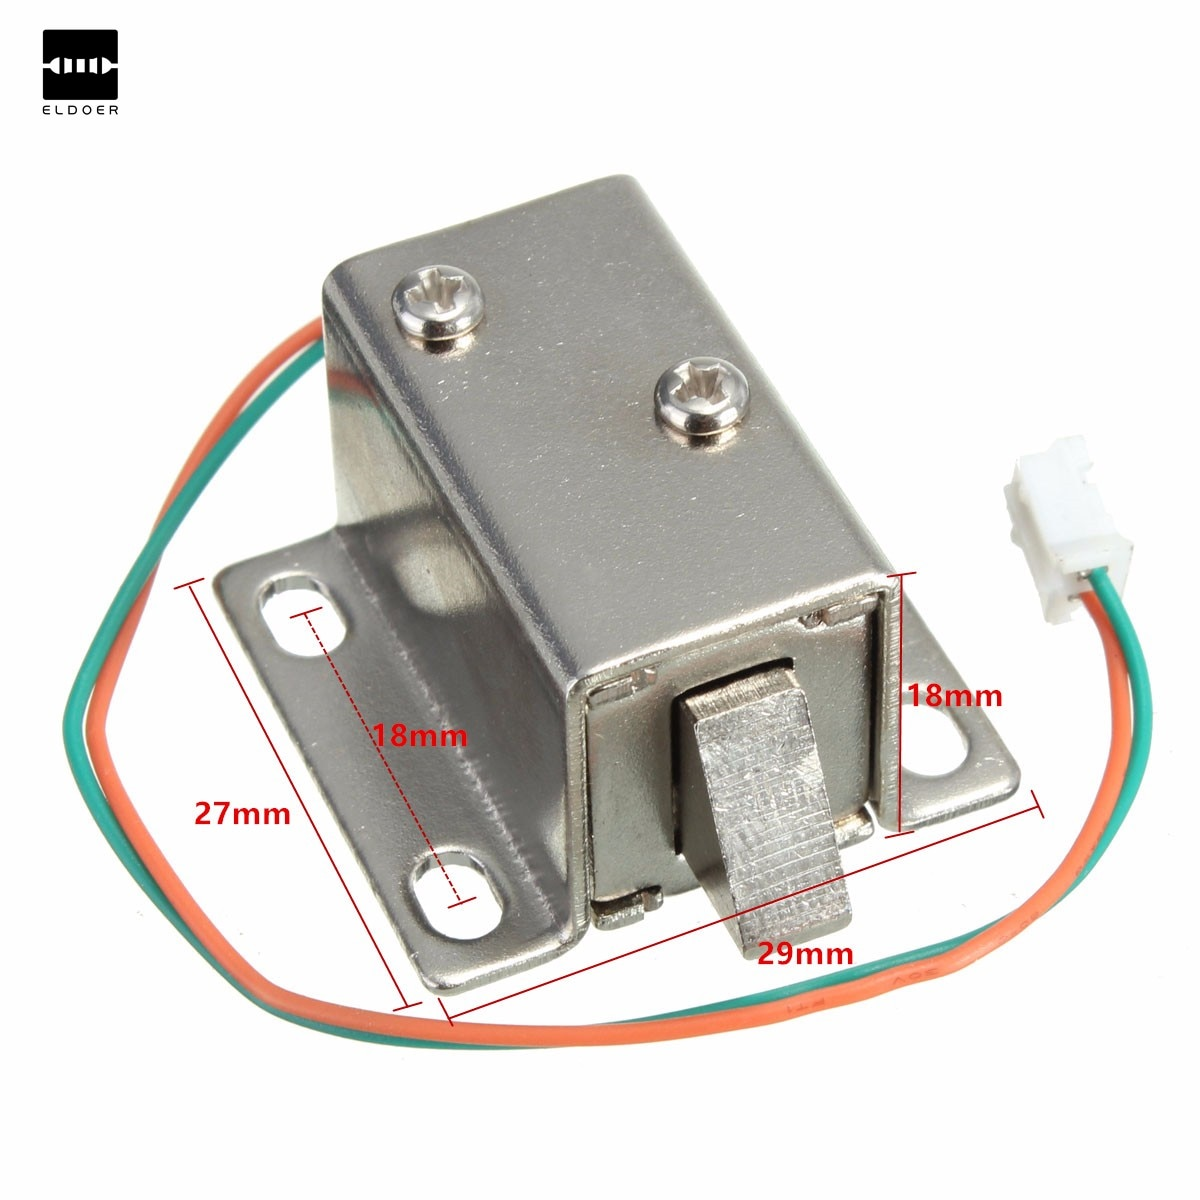 Small 27x29x18mm 12VDC Cabinet Door Drawer Electric Lock Assembly Solenoid Lock Durable in use